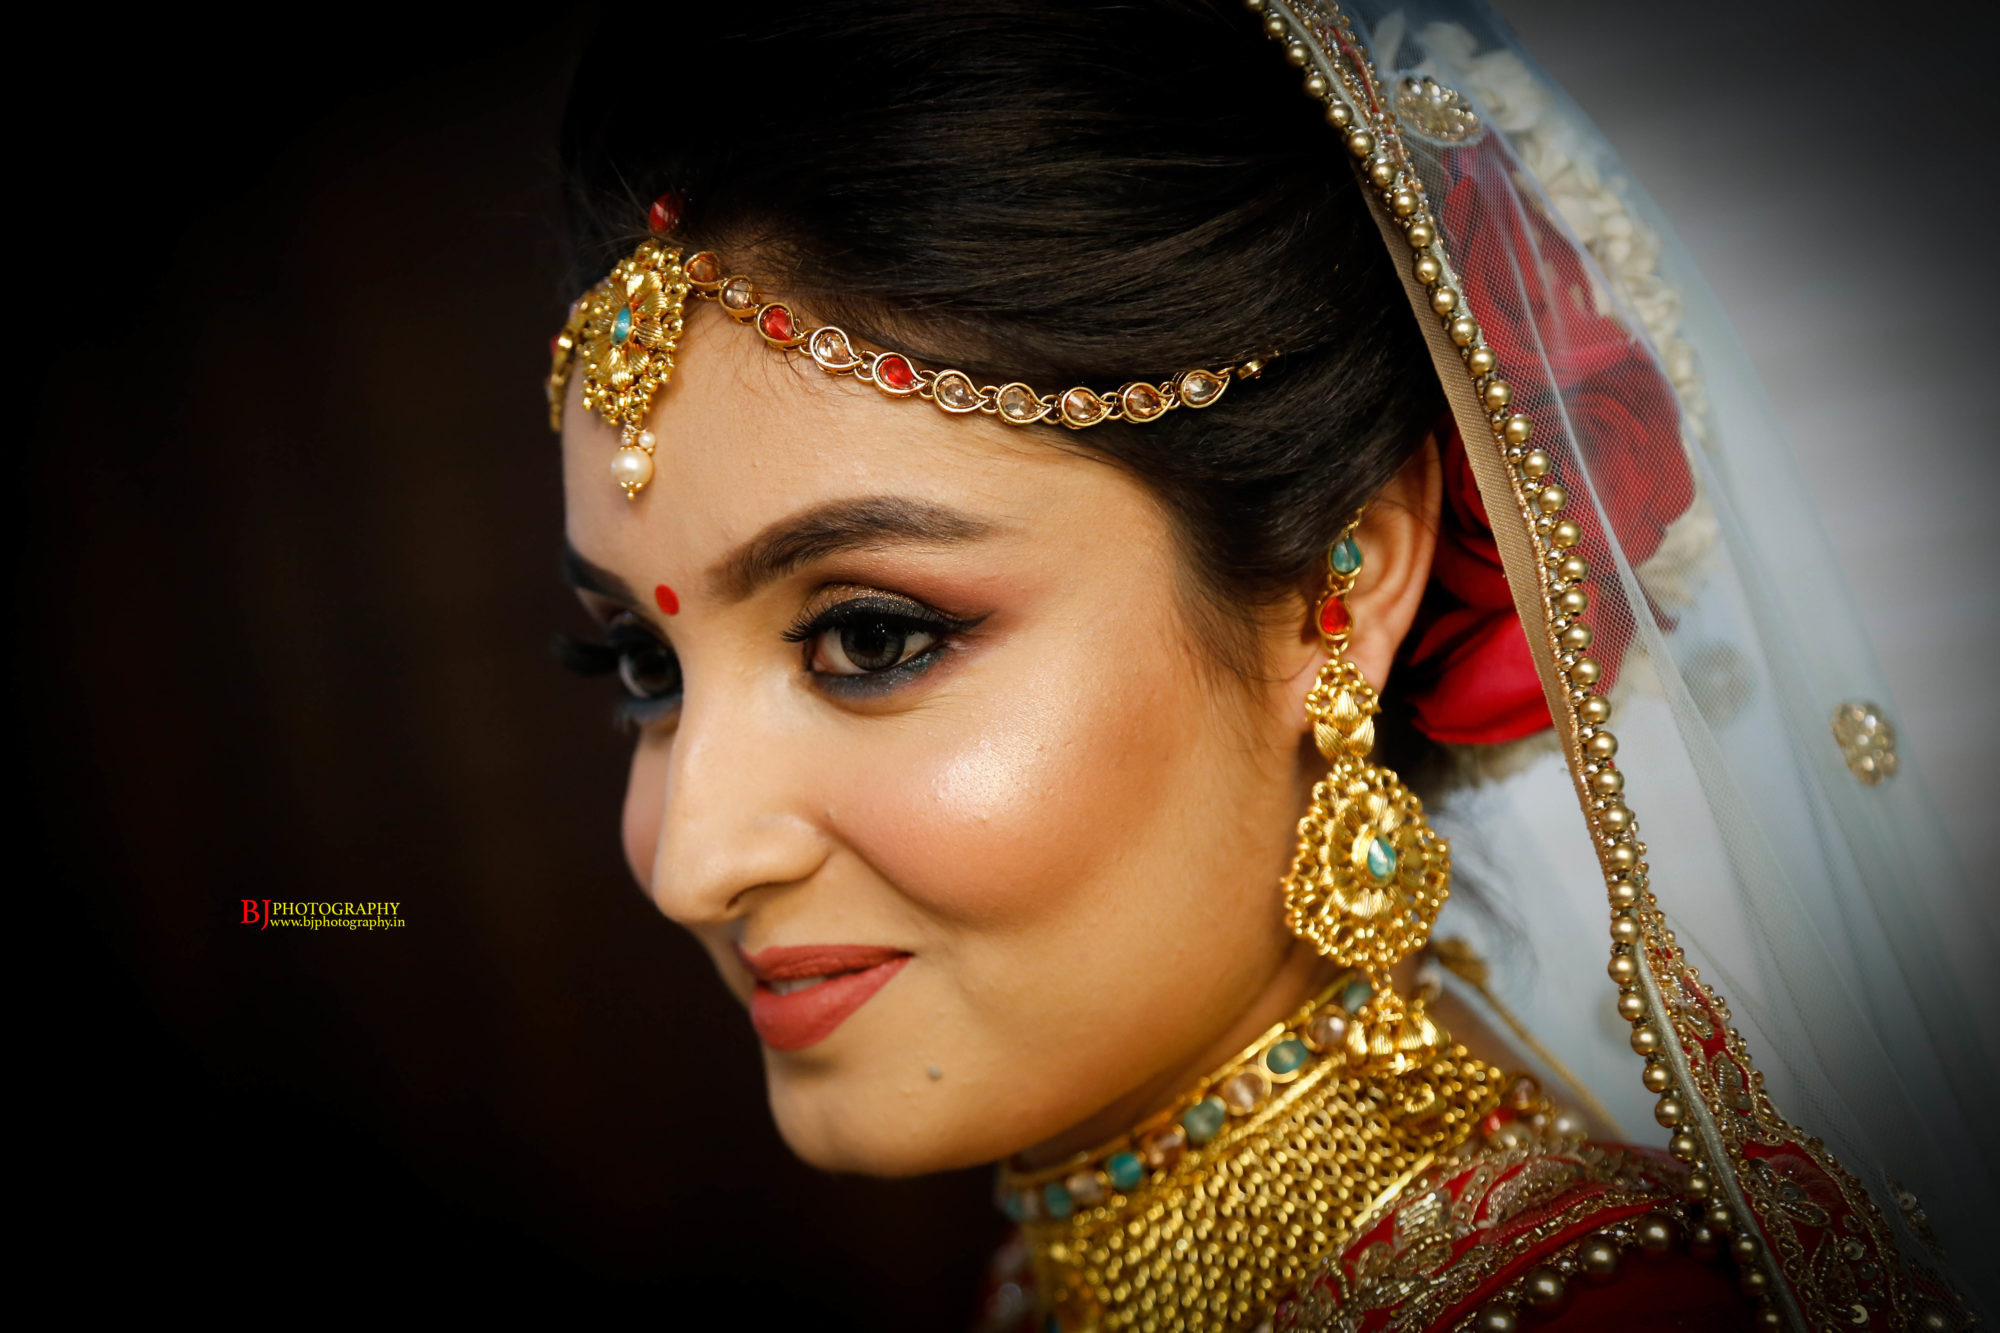 BJ Photography - Best Wedding Photographer in Chandigarh and Punjab